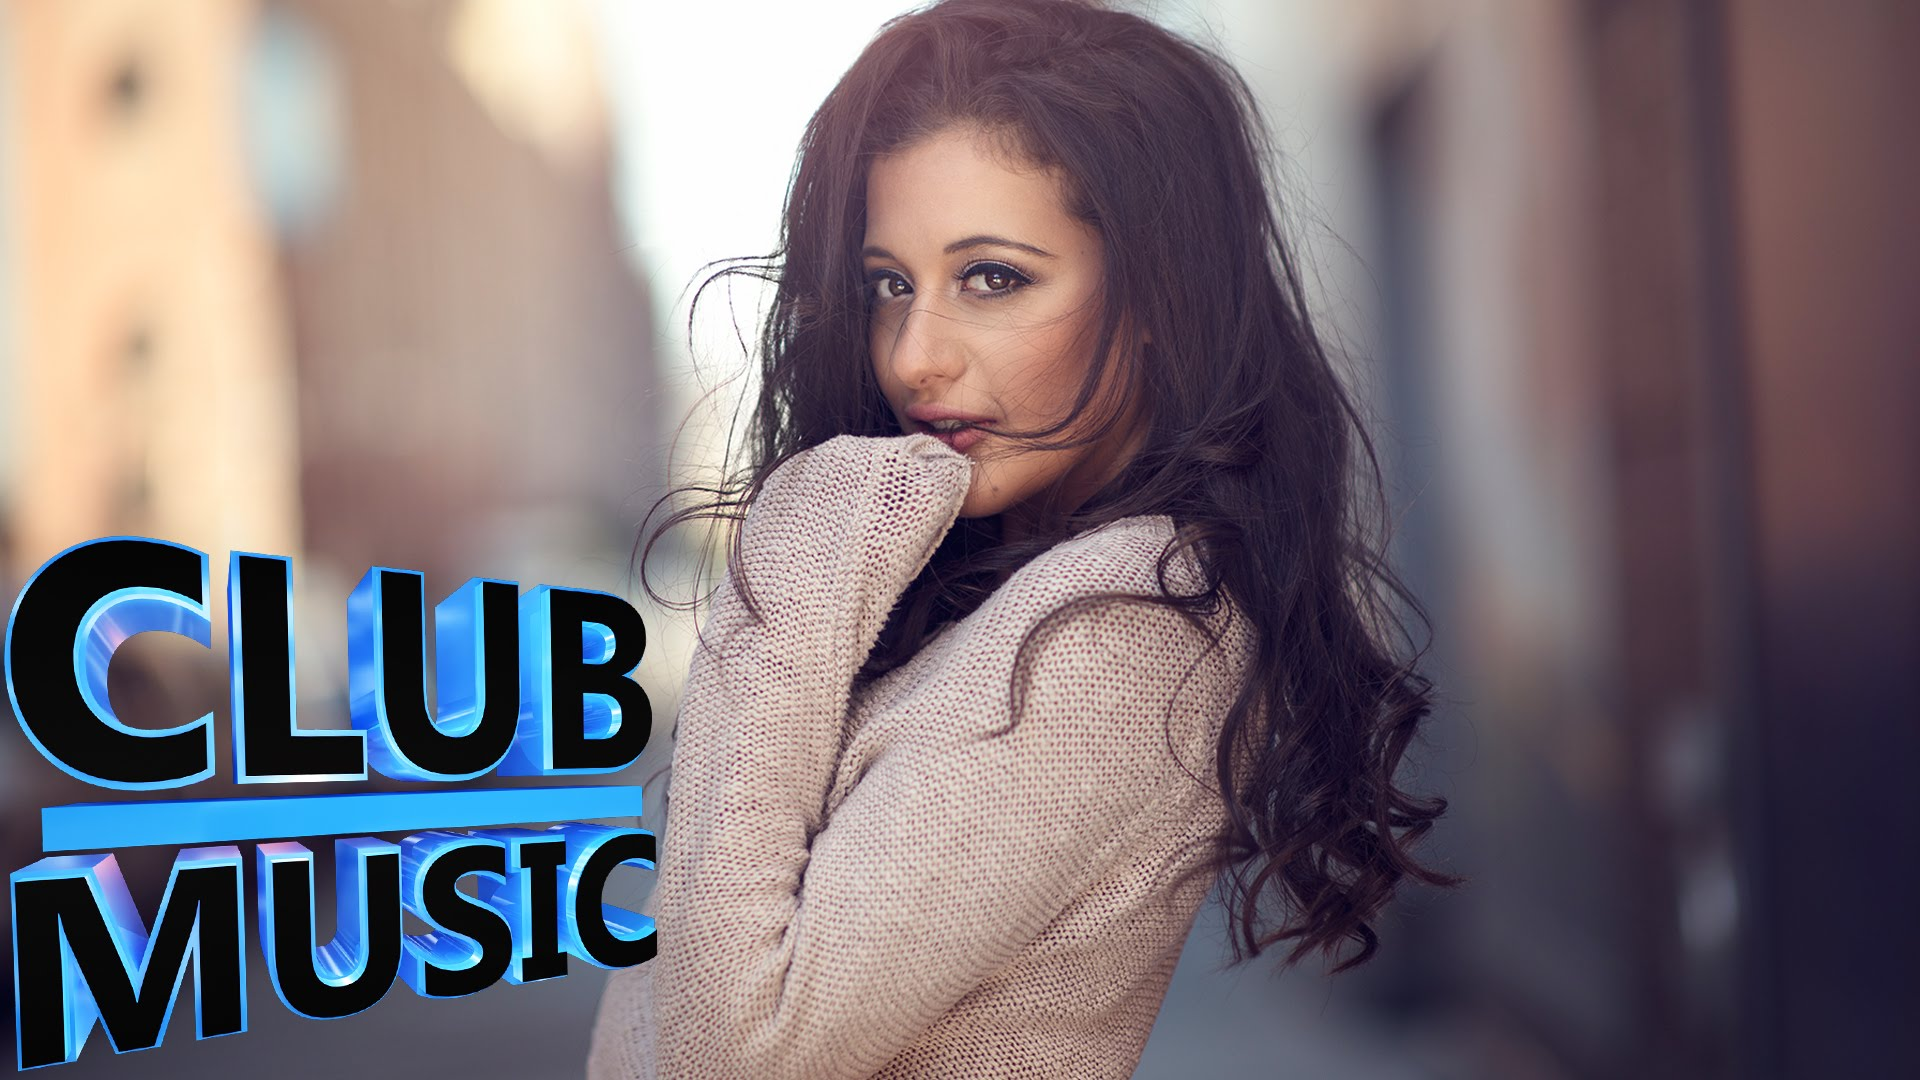 New Best Club Dance House Music MEGAMIX 2015 - CLUB MUSIC - Virtual